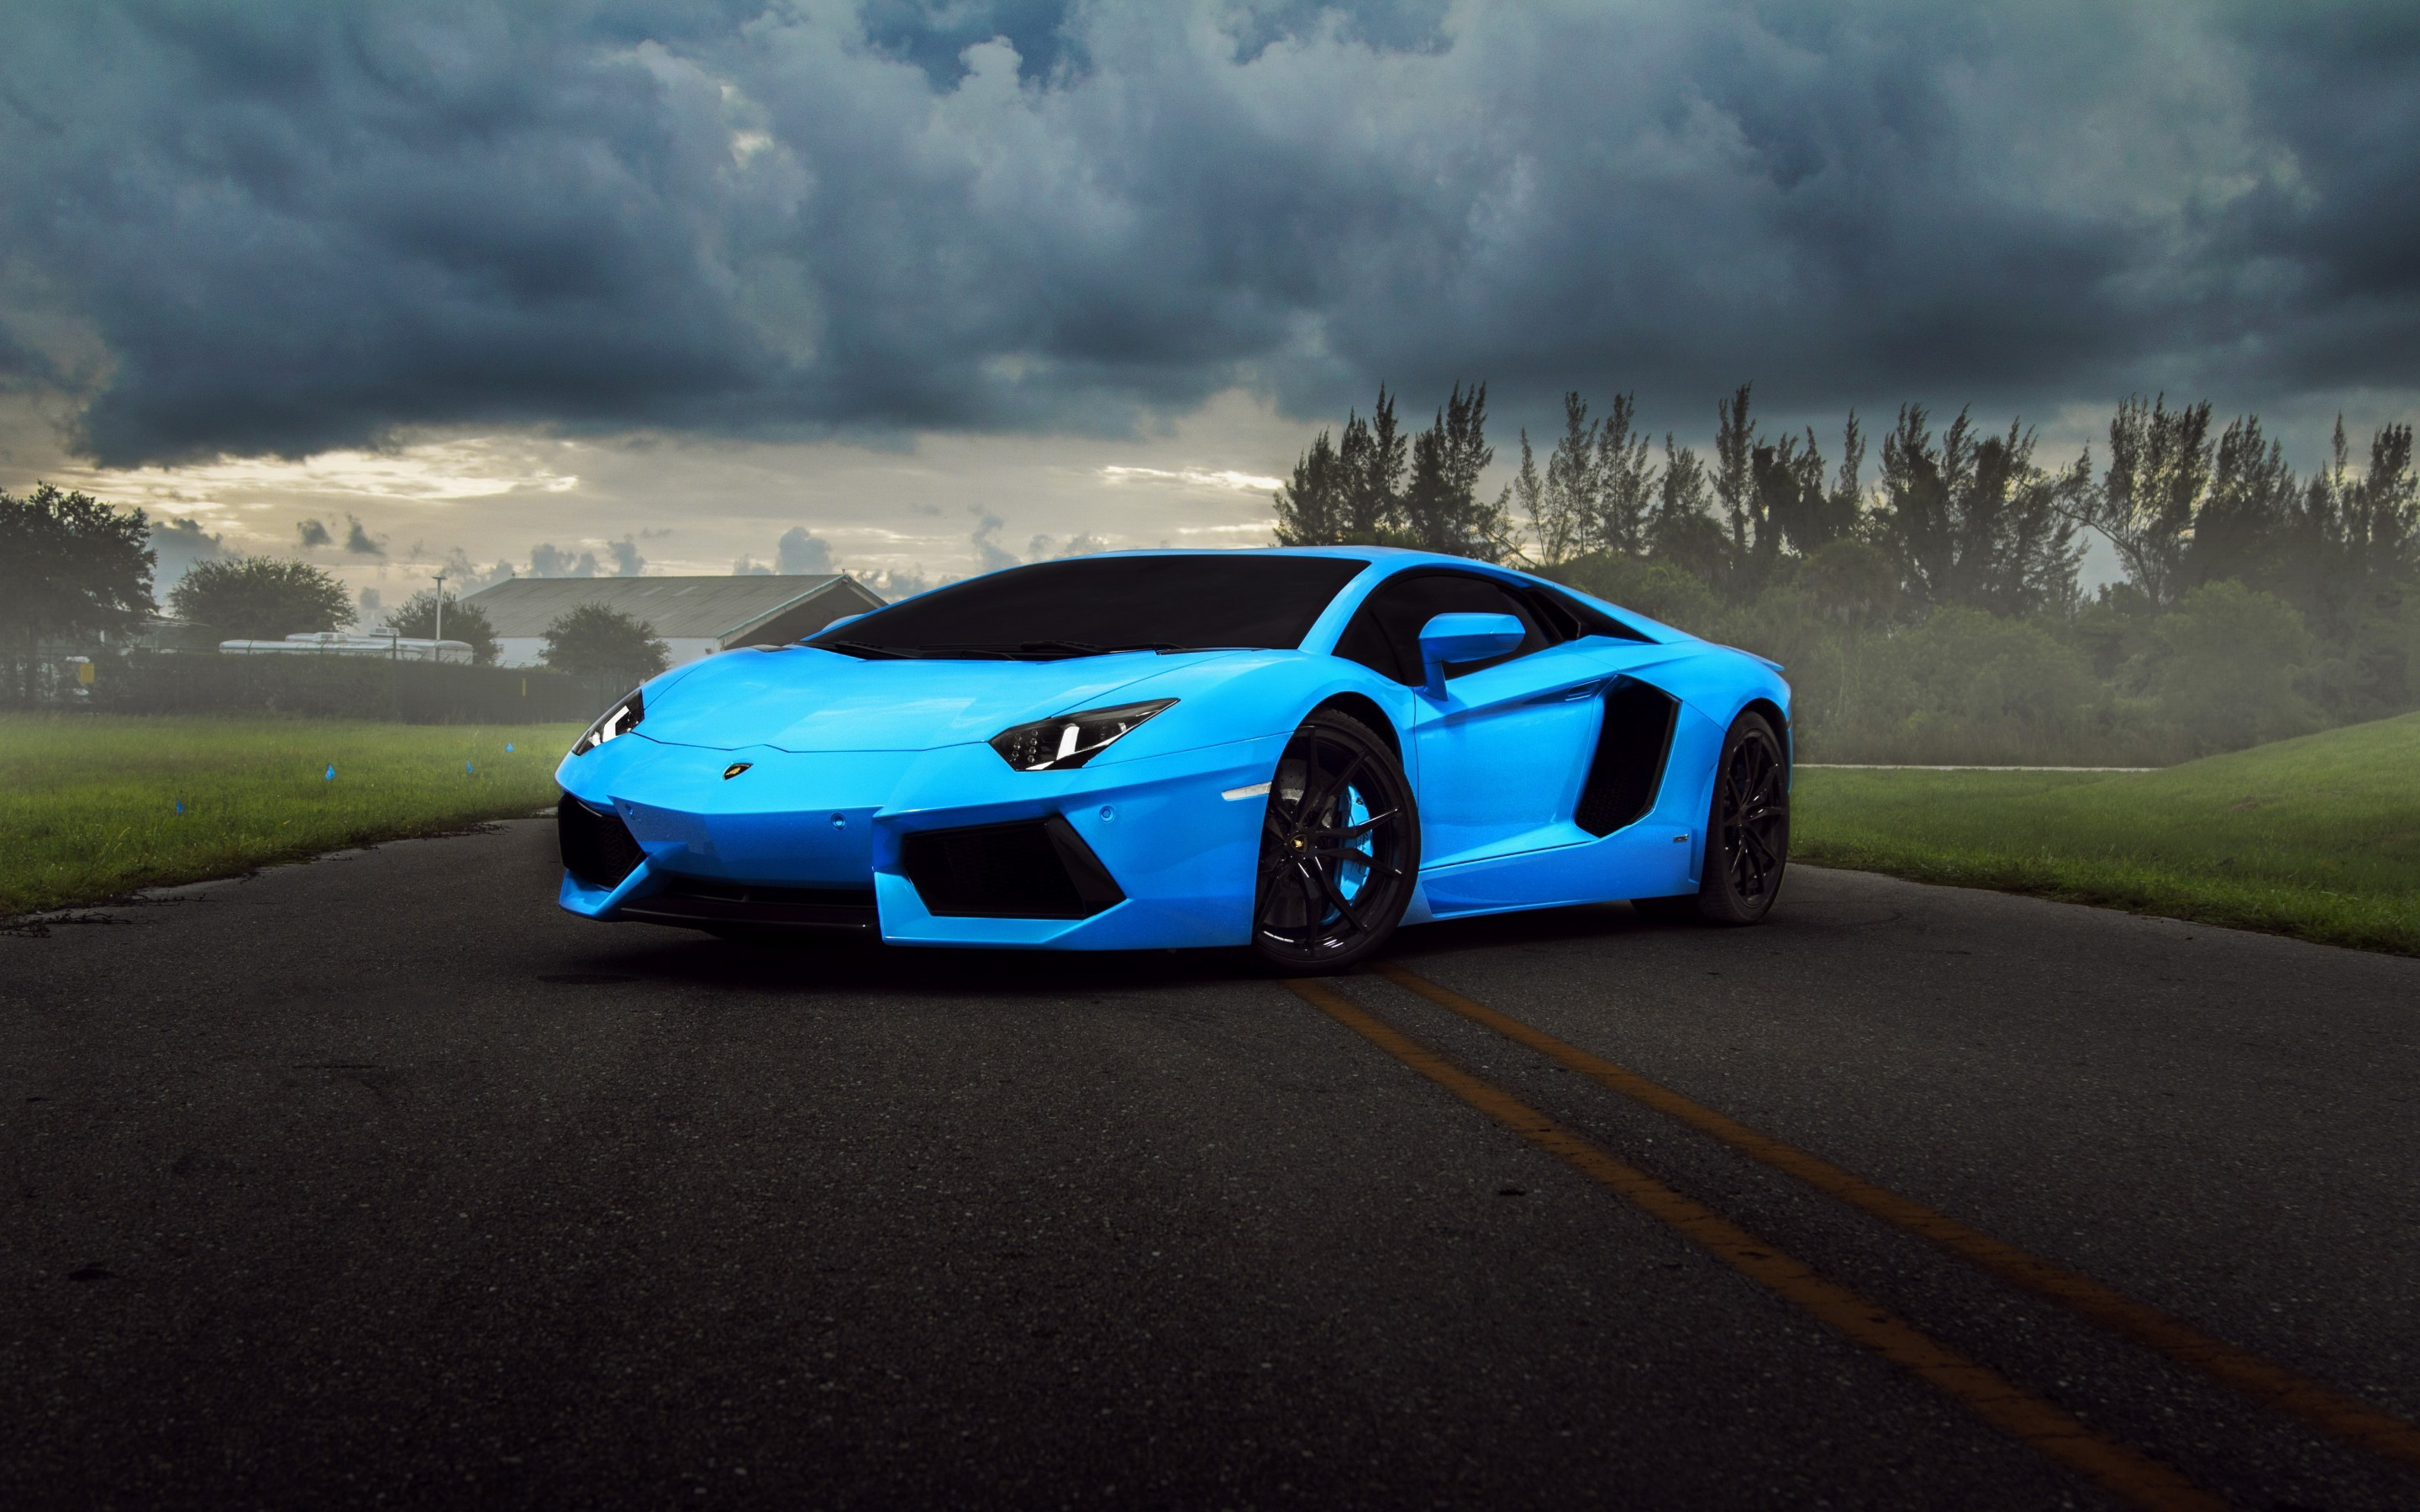 2880x1800 ... lamborghini aventador roadster lp700 4 blue new car wallpapers .